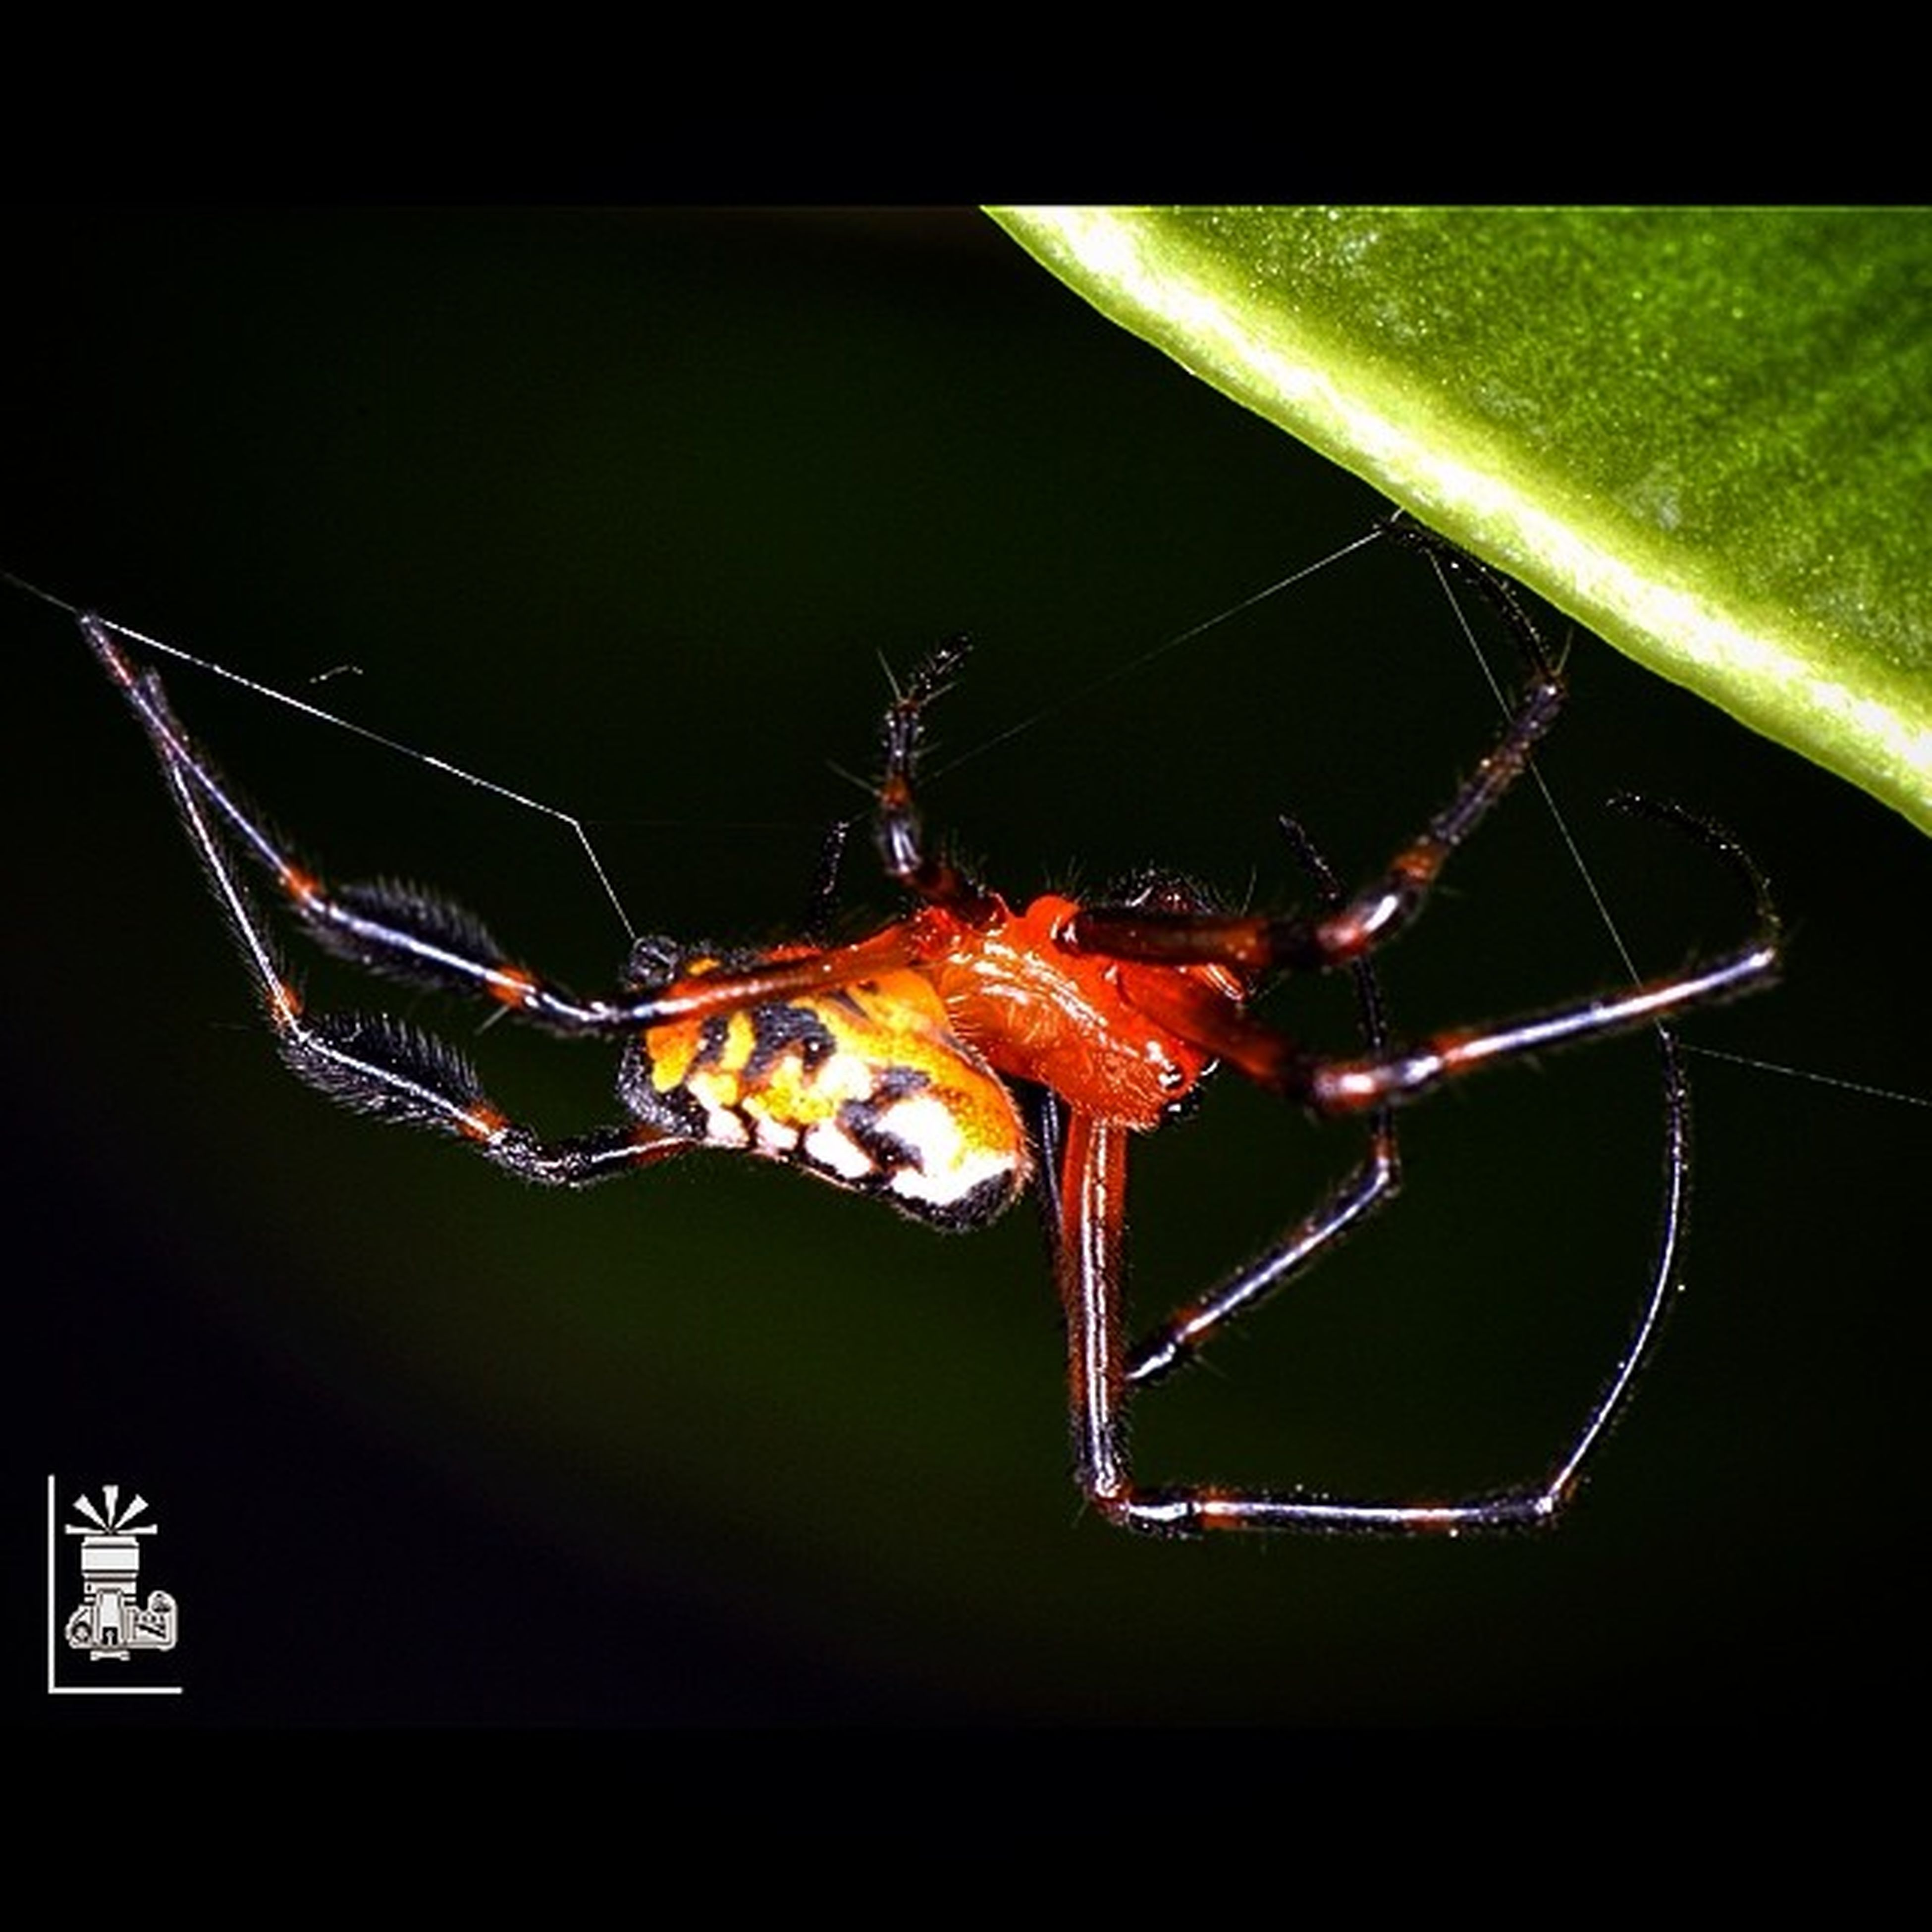 animal themes, night, close-up, one animal, black background, studio shot, illuminated, insect, focus on foreground, spider, wildlife, transfer print, animals in the wild, auto post production filter, spider web, pattern, no people, natural pattern, animal markings, outdoors